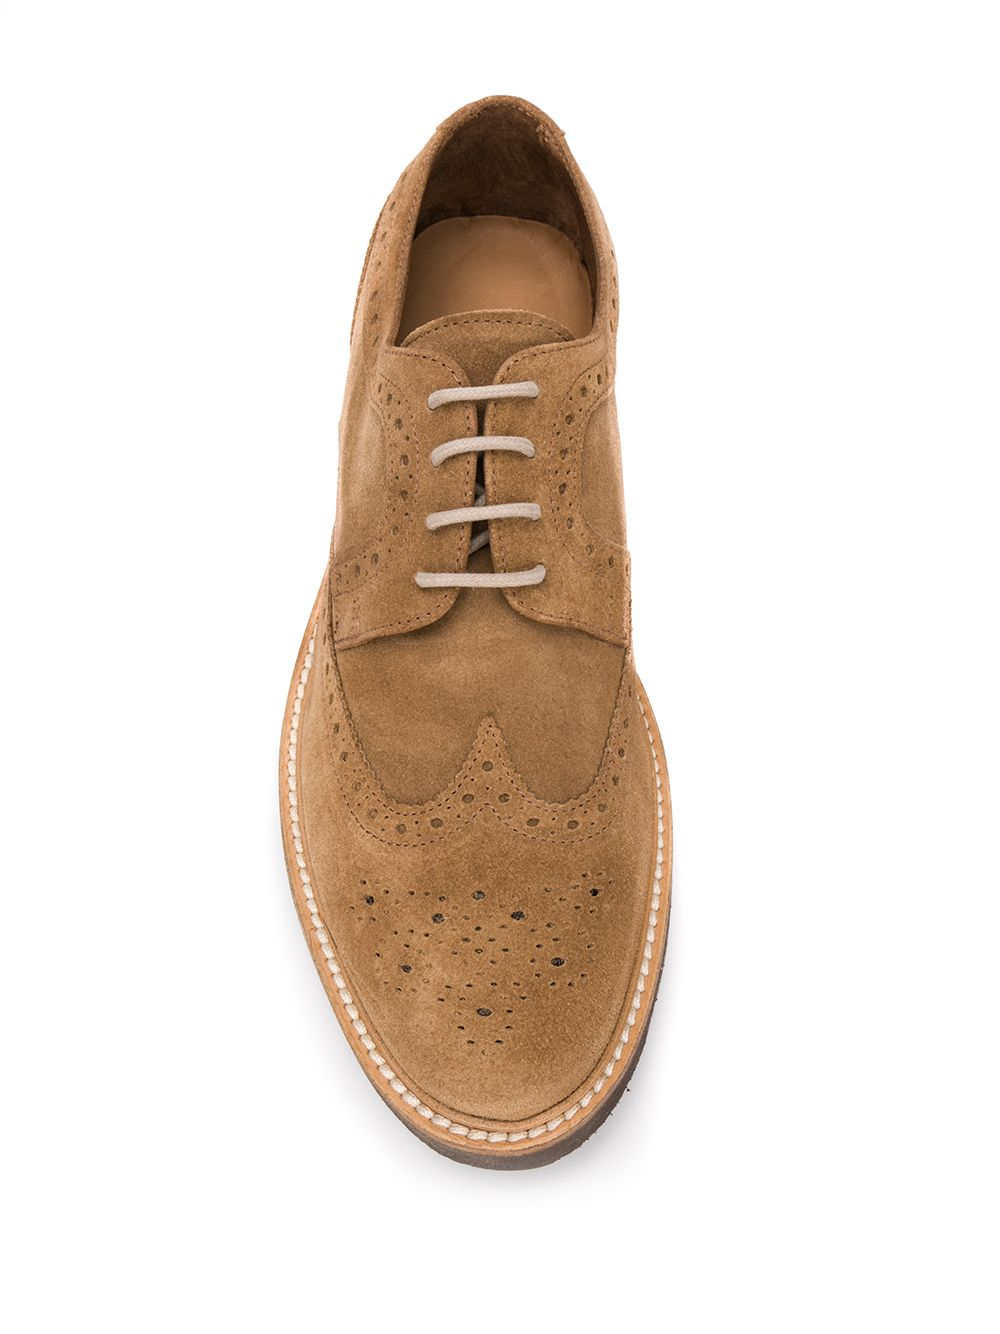 soft camel suede Oxford brogue shoes ELEVENTY |  | A72SCAA06-SCA0A02903